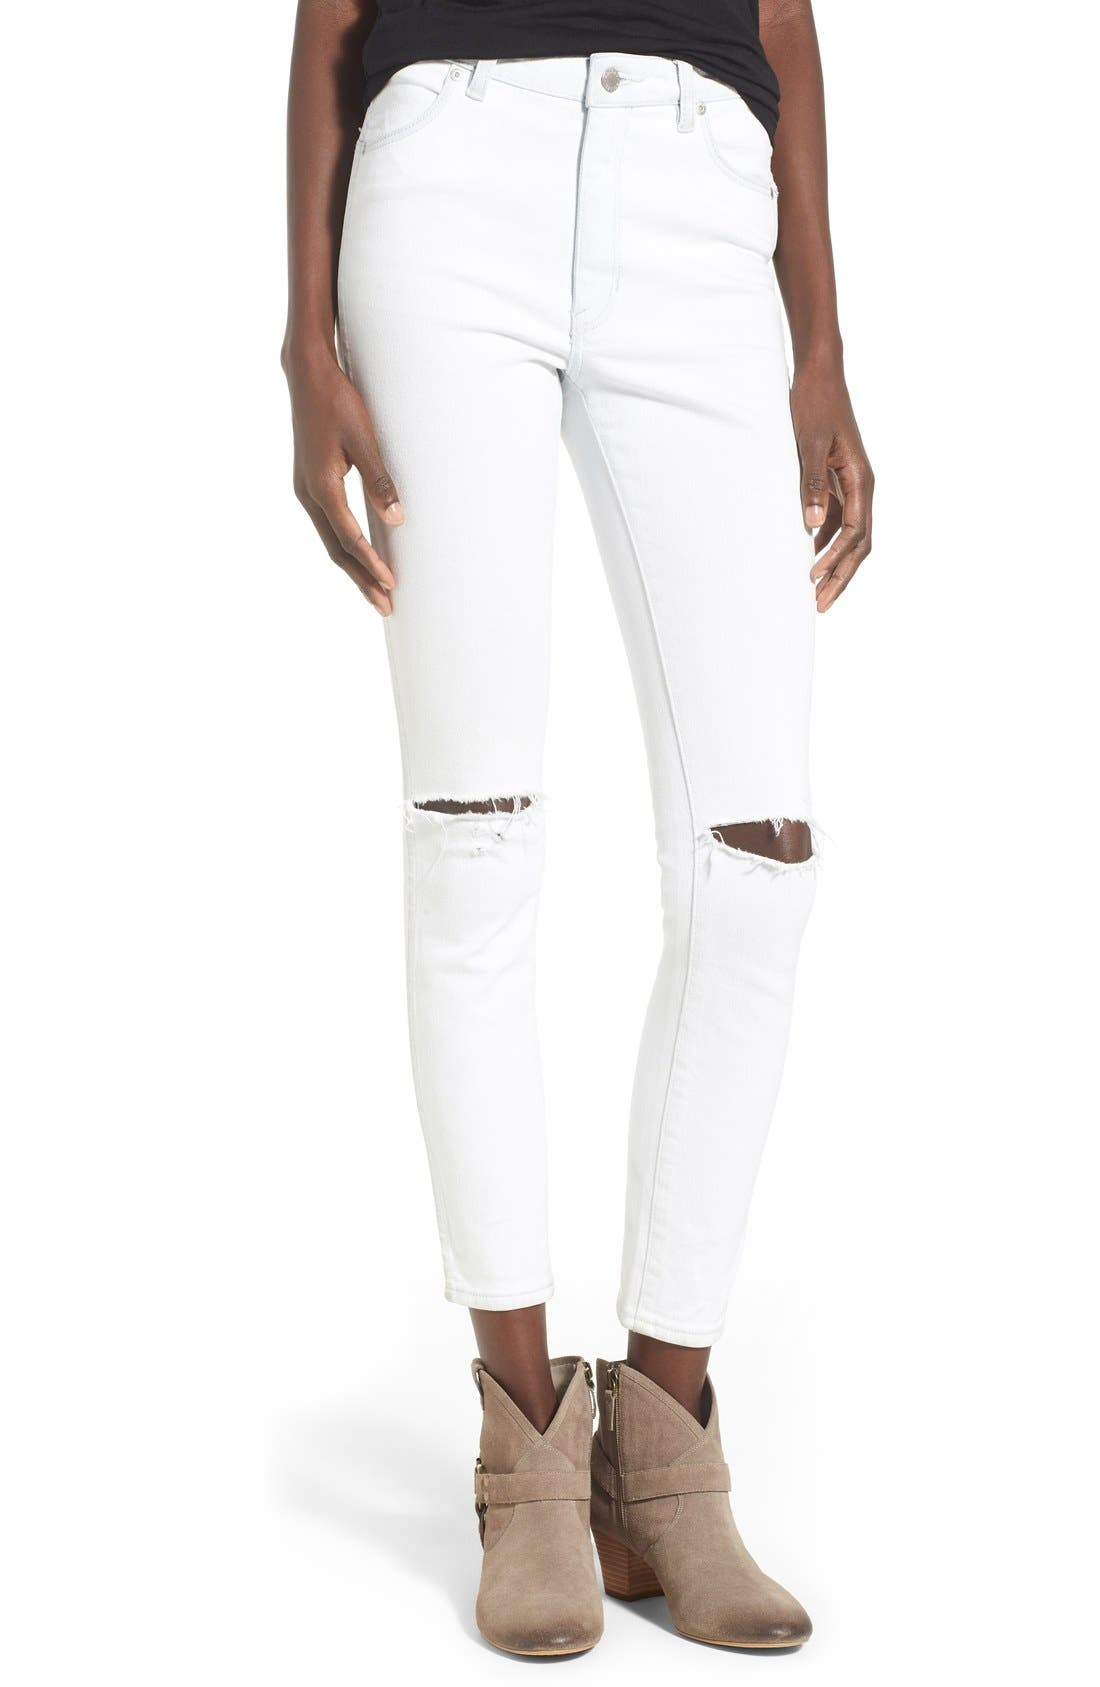 Alternate Image 1 Selected - Rolla's 'West Coast' Distressed Skinny Jeans (Worn White)